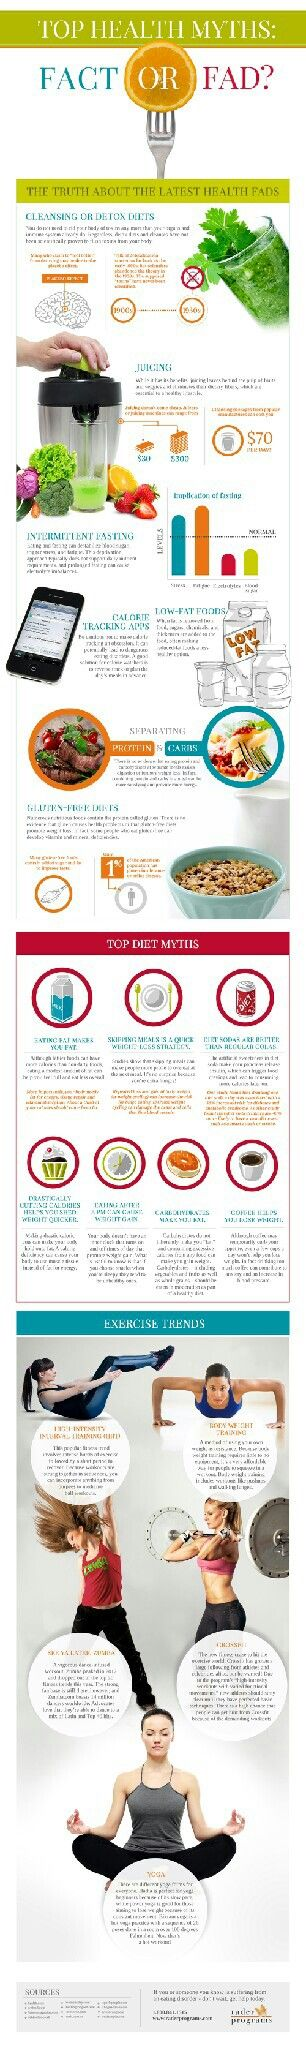 Infographic on Fad Diets